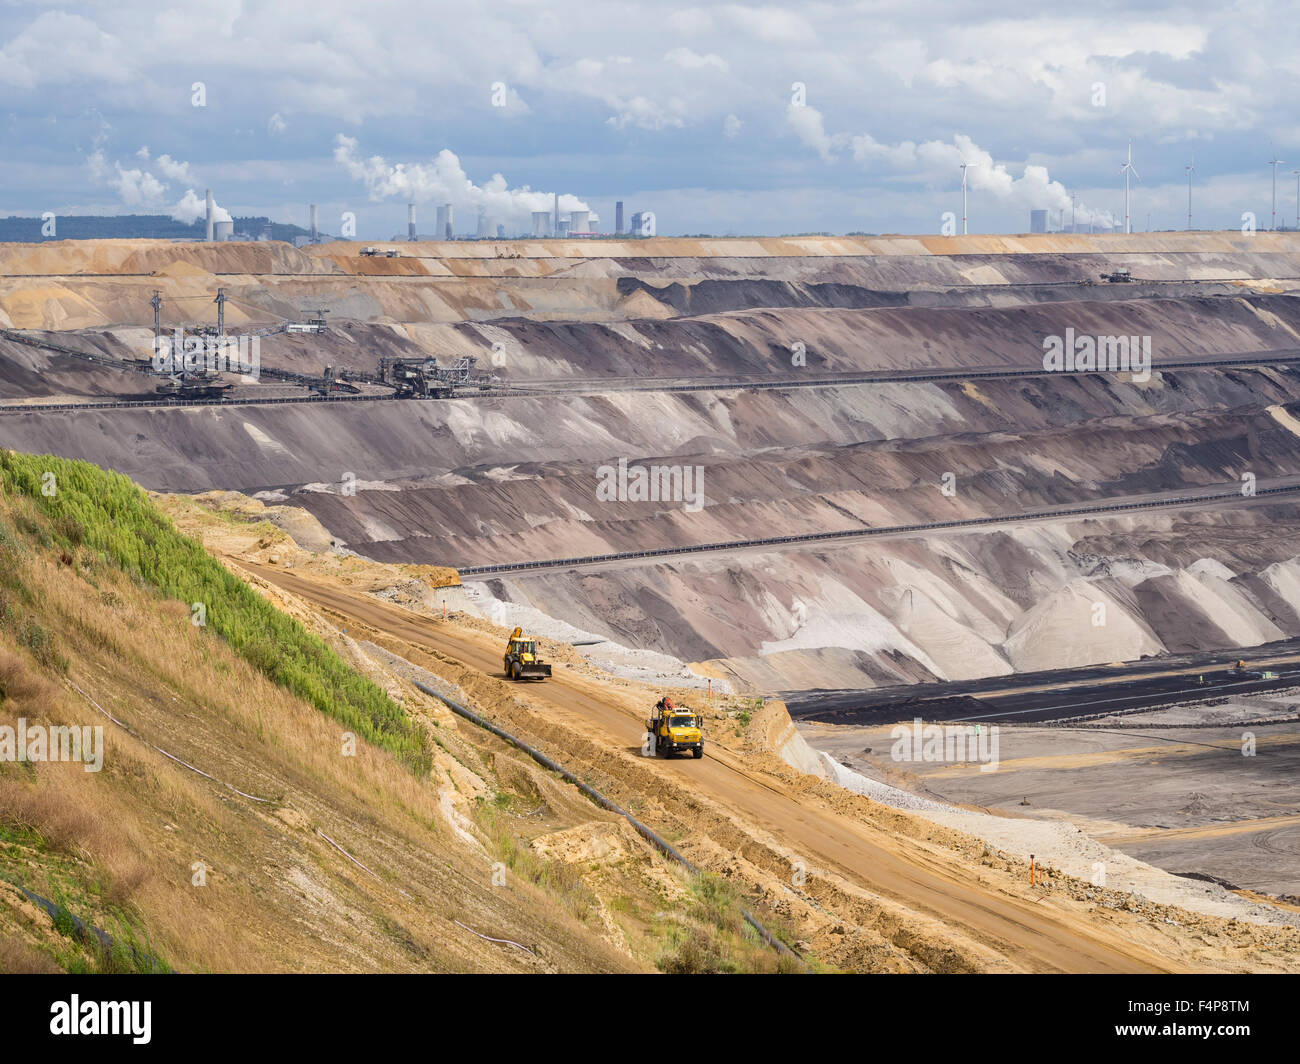 Cratered landscape of the surface mining field at Garzweiler, Germany's largest opencast pit for lignite extraction. Stock Photo